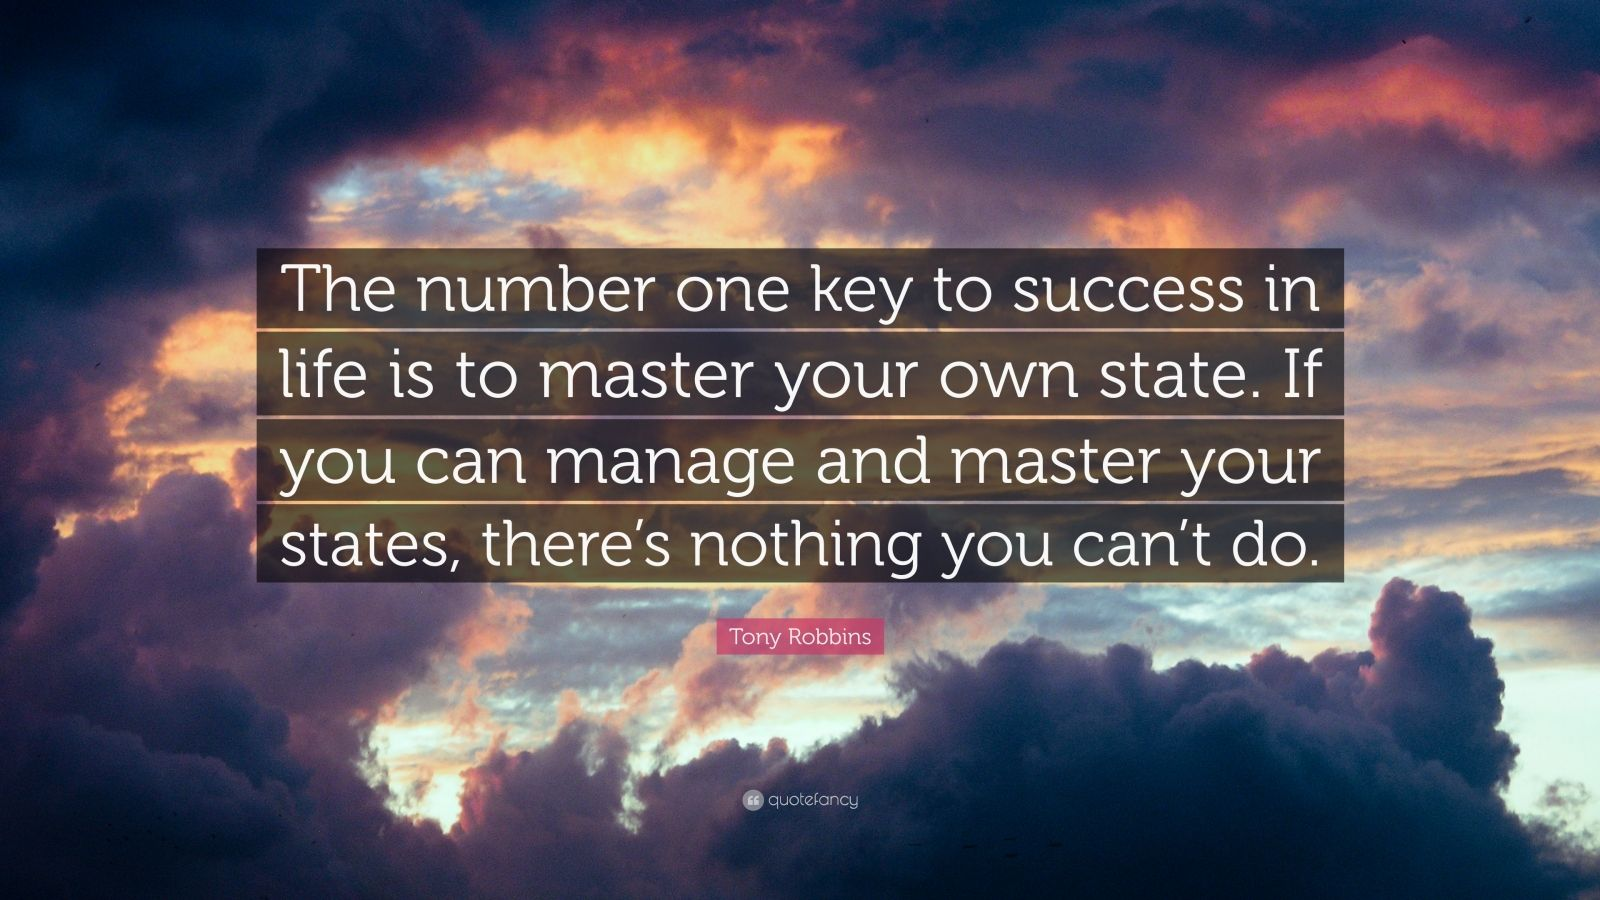 """Tony Robbins Quote: """"The number one key to success in life is to master your own state. If you can manage and master your states, there's nothing you can't do."""""""